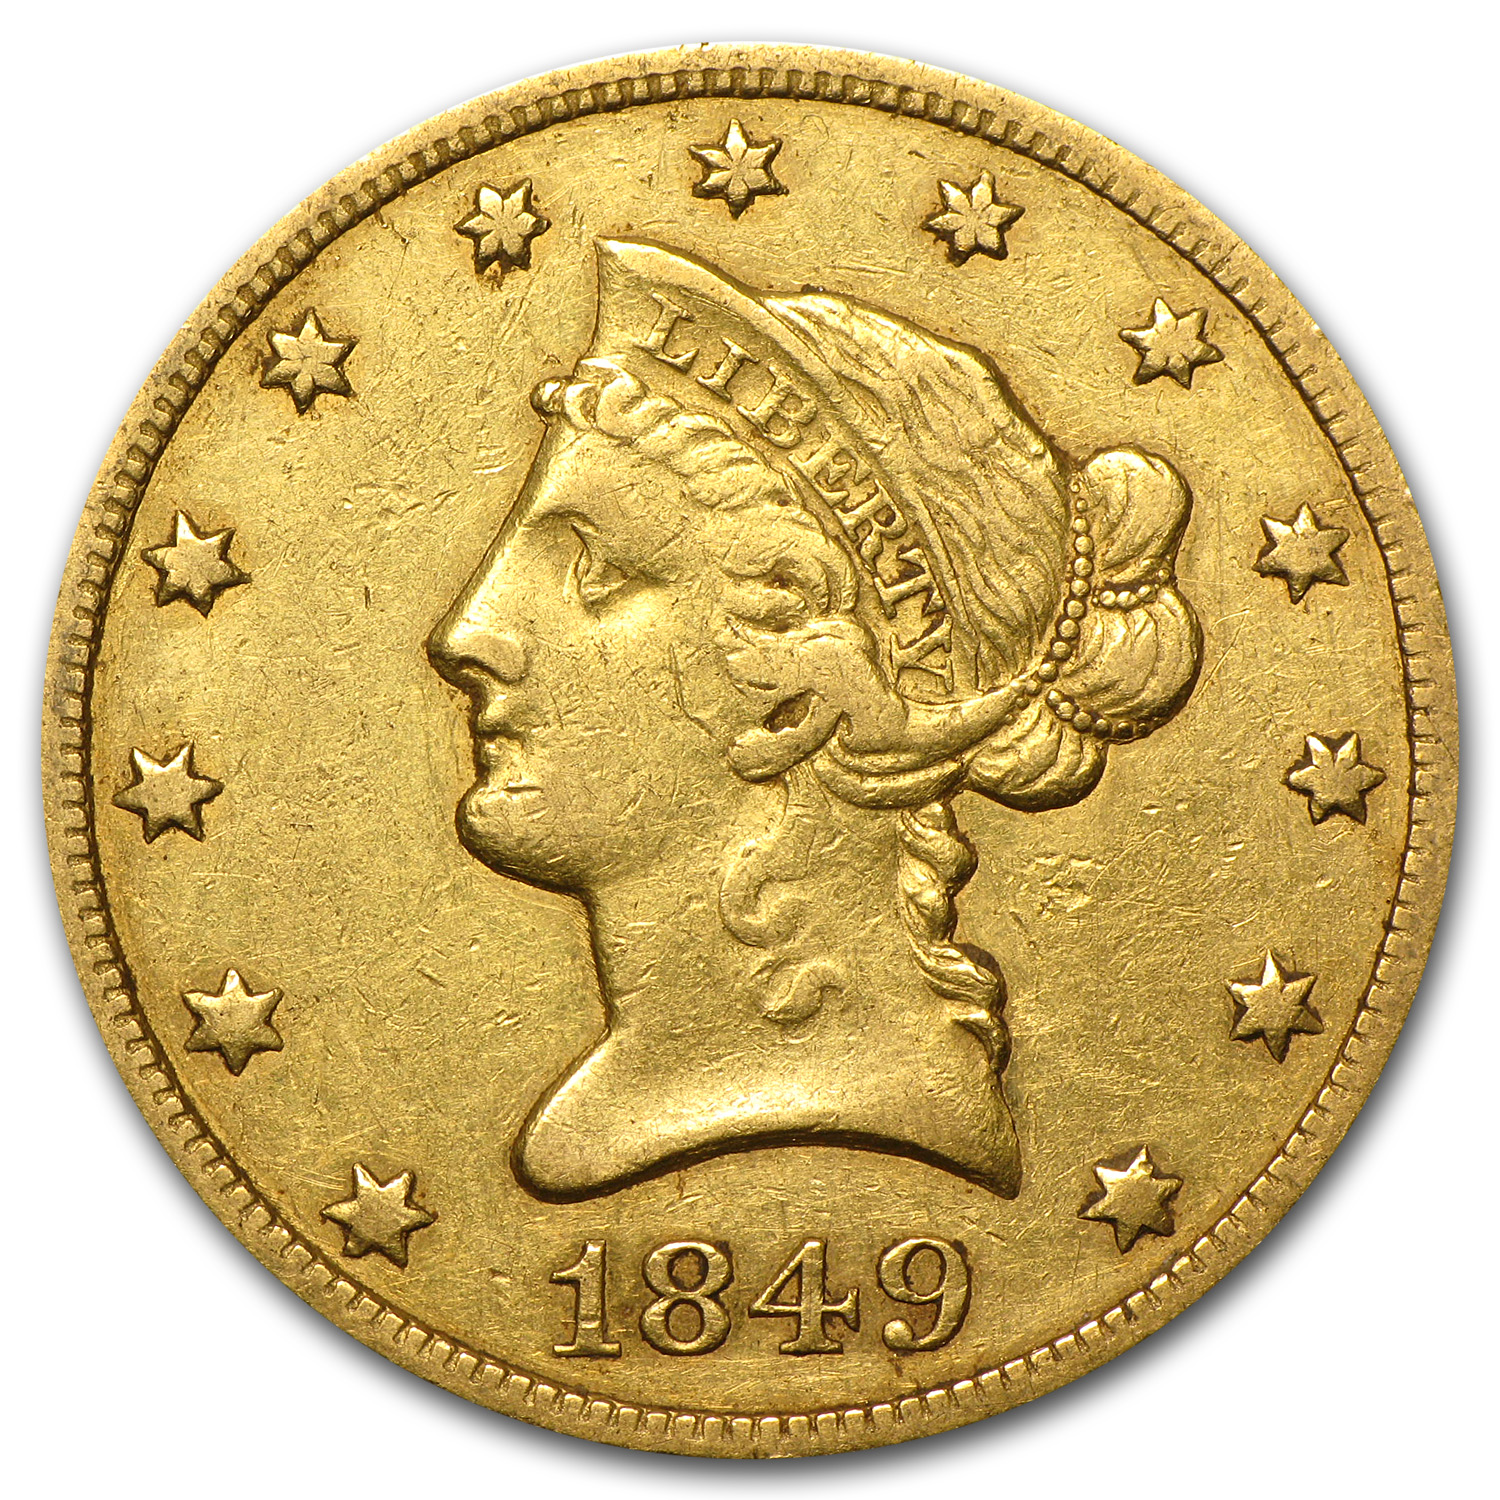 1849 $10 Liberty Gold Eagle Very Fine